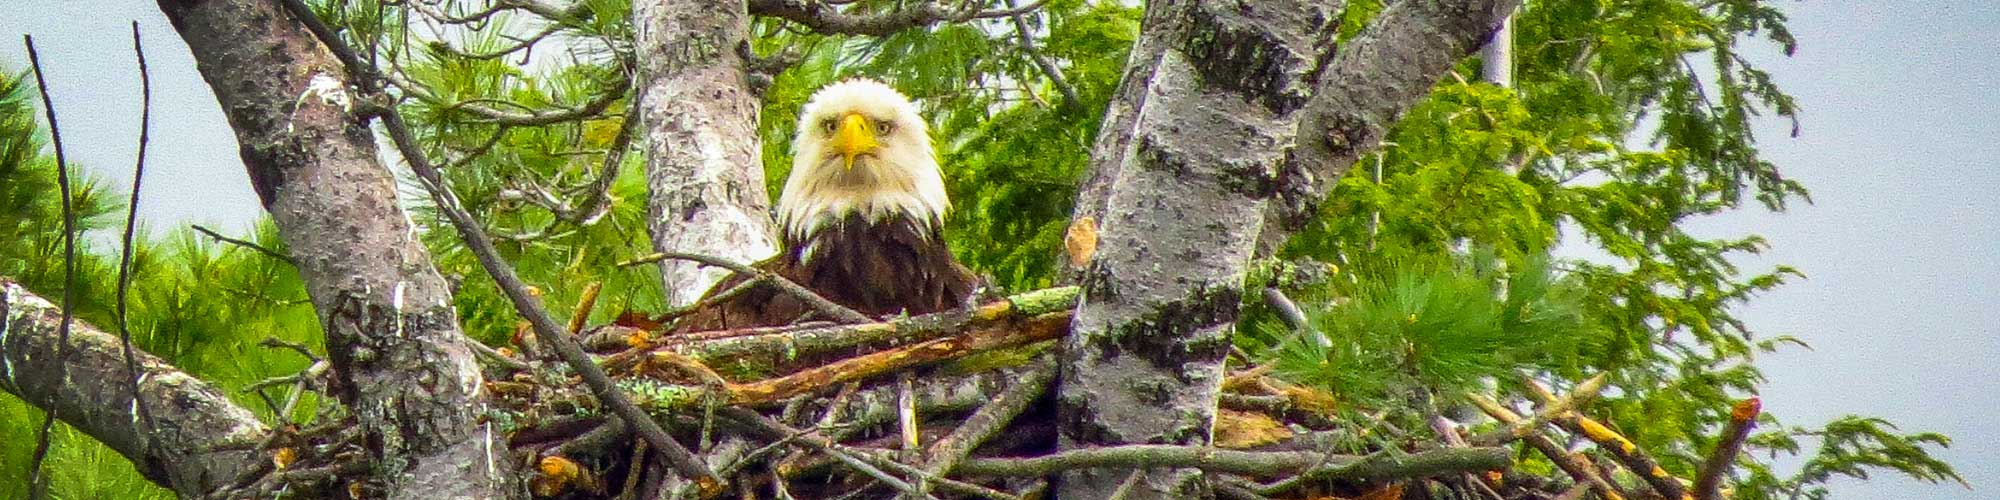 Bald Eagle sitting in a nest in a tree